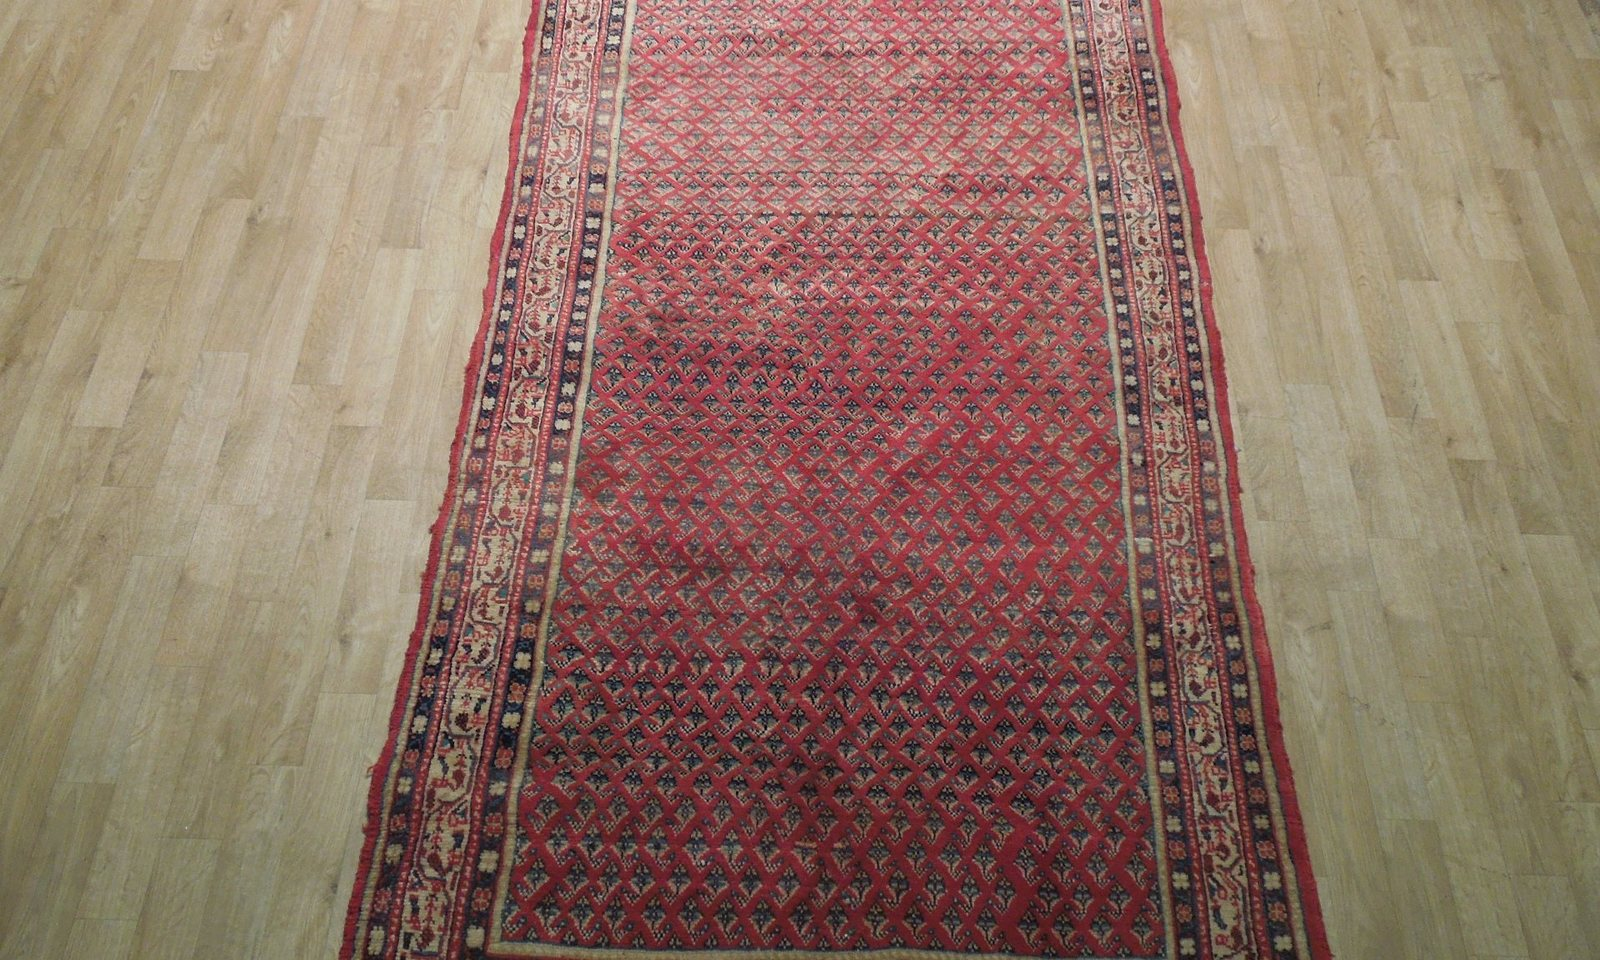 Mir Persian Wool Hand-Knotted Rug 4 x 9 Estate All-Over Flames Design Red Rug image 10